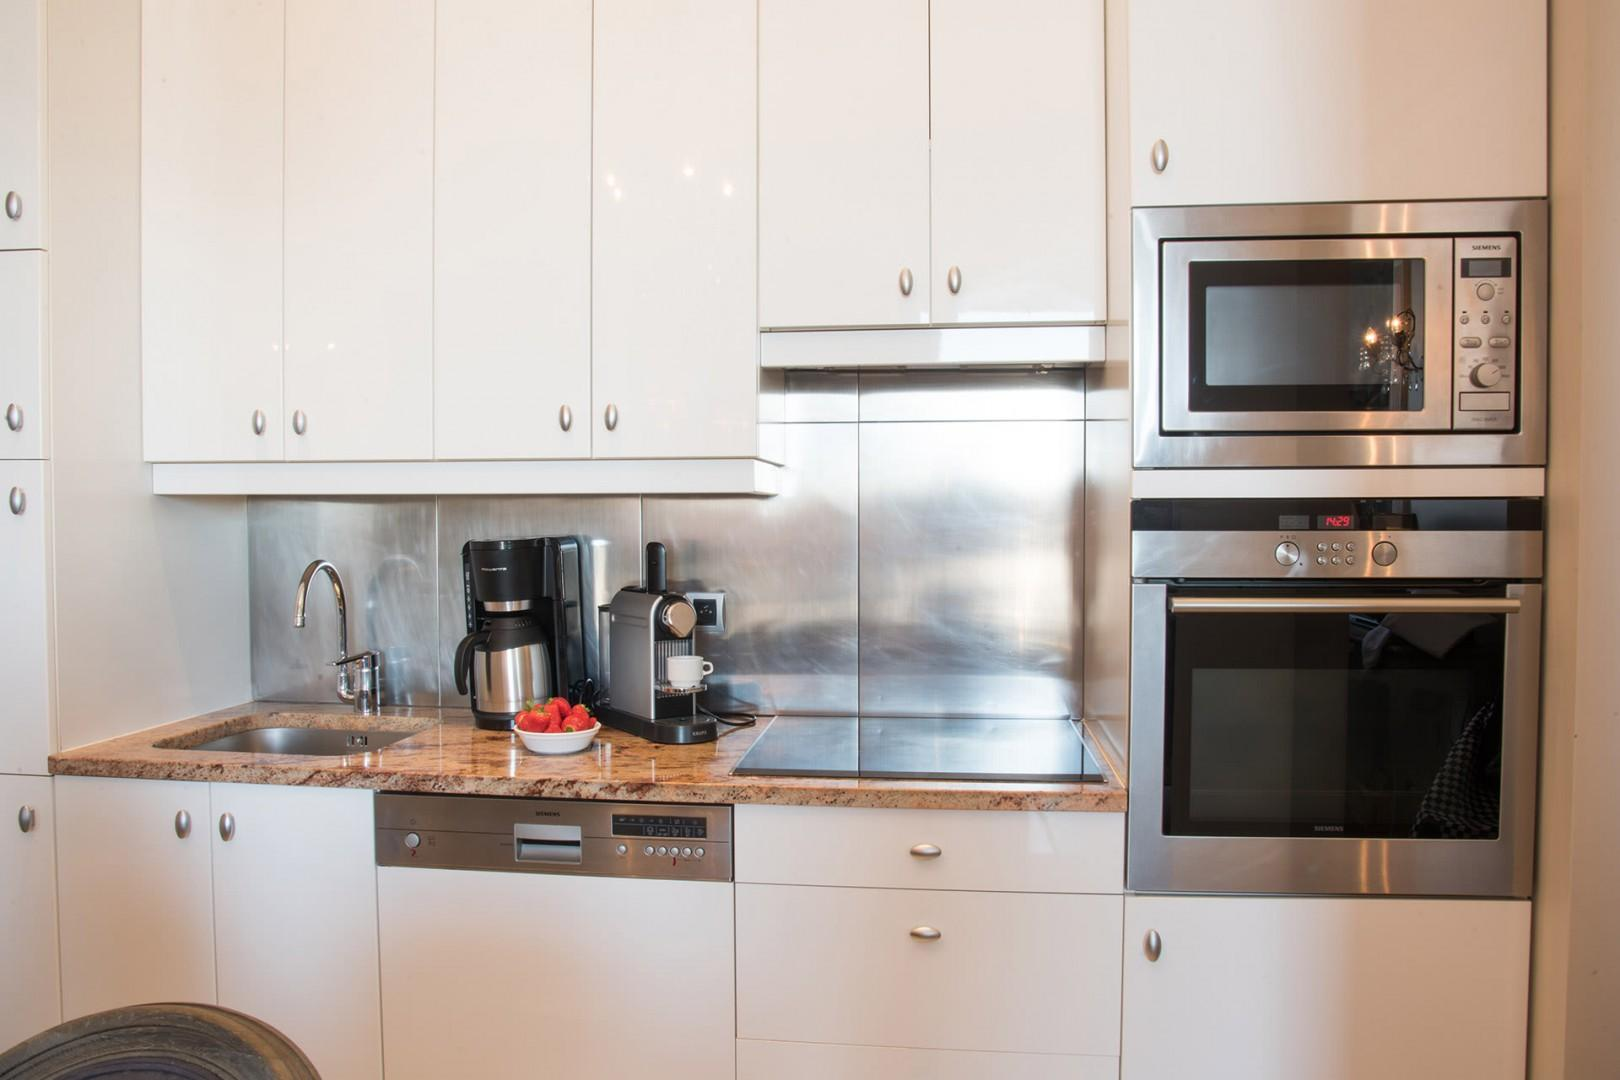 The modern and stylish kitchen is fully equipped with everything you need.